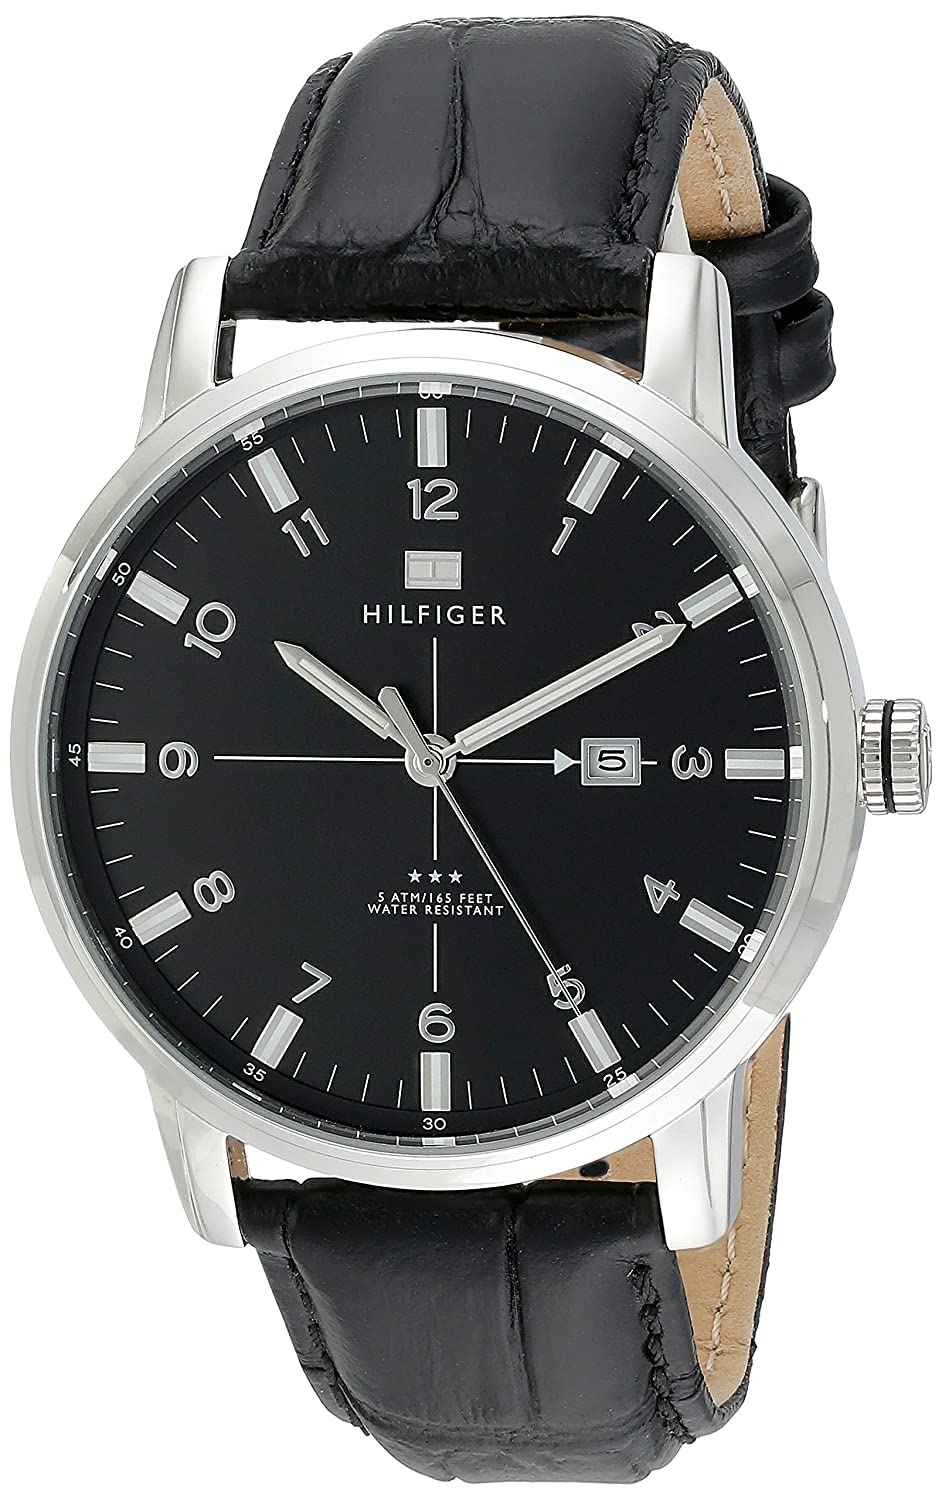 de6cdc4a9 Amazon.com: Tommy Hilfiger Men's 1710330 Stainless Steel Watch with Black  Genuine Leather Band: Tommy Hilfiger: Watches